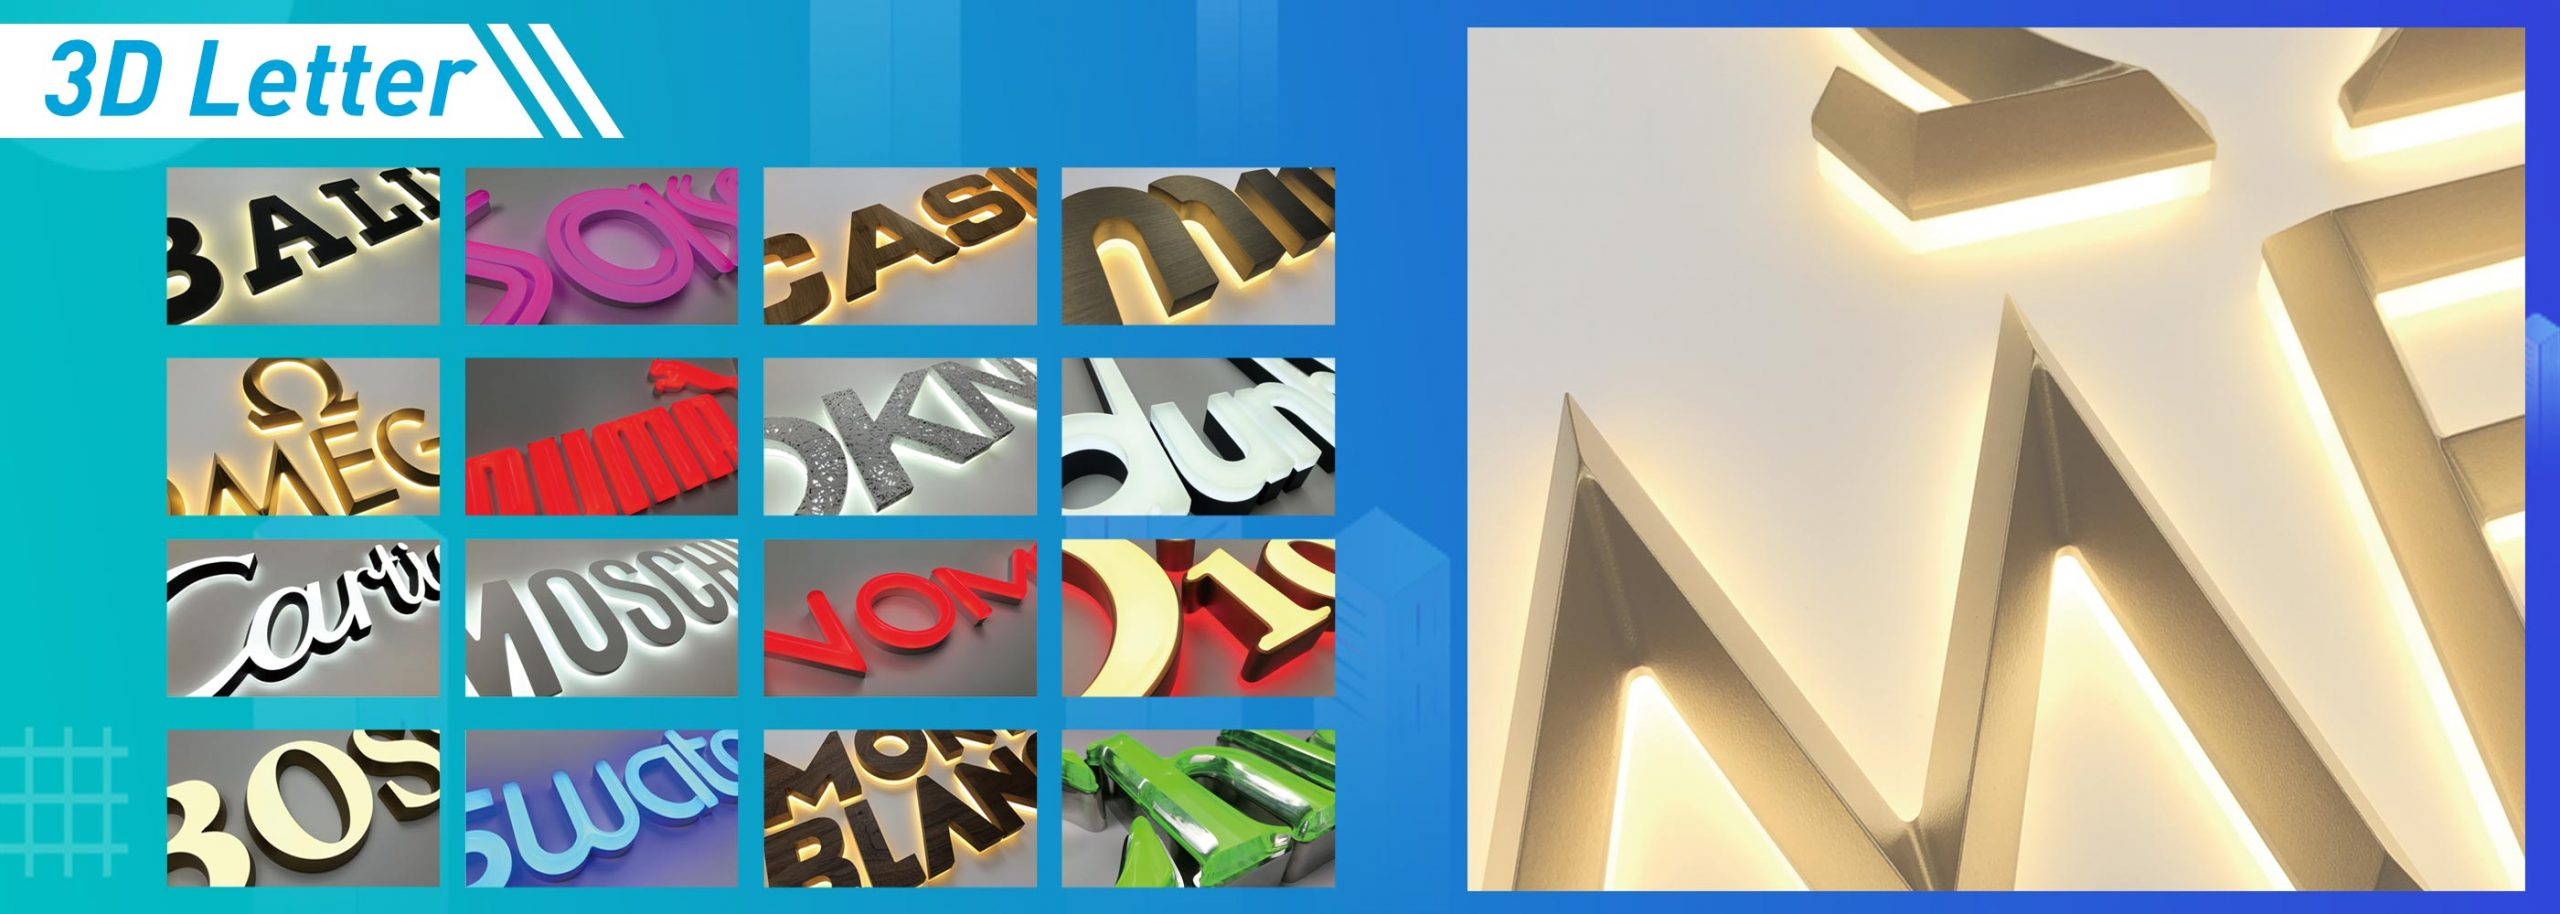 A frame sign, real estate sign, metal frame, custom metal sign, Metal A frame, Metal A sign, real estate A frame, A board pavement signs, Sidewalk A board, pop up A frame, A frame signs, pavement sign, LED sign,  3D LETTER, acrylic sign, letter lights, LED letter,  acrylic letter, backlit LED letter,  3 dimensional sign,  teardrop banner, teardrop flag, advertising flag, Feather banner,  feather flag, sail flag, bali flag, bali banner, Blade banner,  blade flag, window sticker, vinyl lettering, removable sticker, clear sticker, removable wall decals, removable wall stickers, transparent sticker, frotsed sticker, one way vision sticker, kiss cut sticker, bubble free sticker Car sticker, Car decals, Bumper stickers, Car window stickers, Custom car stickers, Truck Sticker, Car signs, Car magnets, magnetic car signs, vehicle signage, magnet stickers, one way vision car sticker, neon lights, neon signs, illuminated sign, neon light signs, custom neon lights, illuminated letter,  light box sign, neon bar signs, neon wall lights,  light up signs,  led neon signs, led neon lights, reception sign, office sign, sign office, office signage, hours of operation sign, office closed sign, office door signs, lobby sign, acrylic reception panel,  Shop sign, Sign shop, Shop front signs, Signs near me, Store signs, Sign company near me, Factory sign, Custom signs near me, The sign shop, fascia sign,  aluminum composite panel,  ACM sign,  metal sign, composite panel sign,